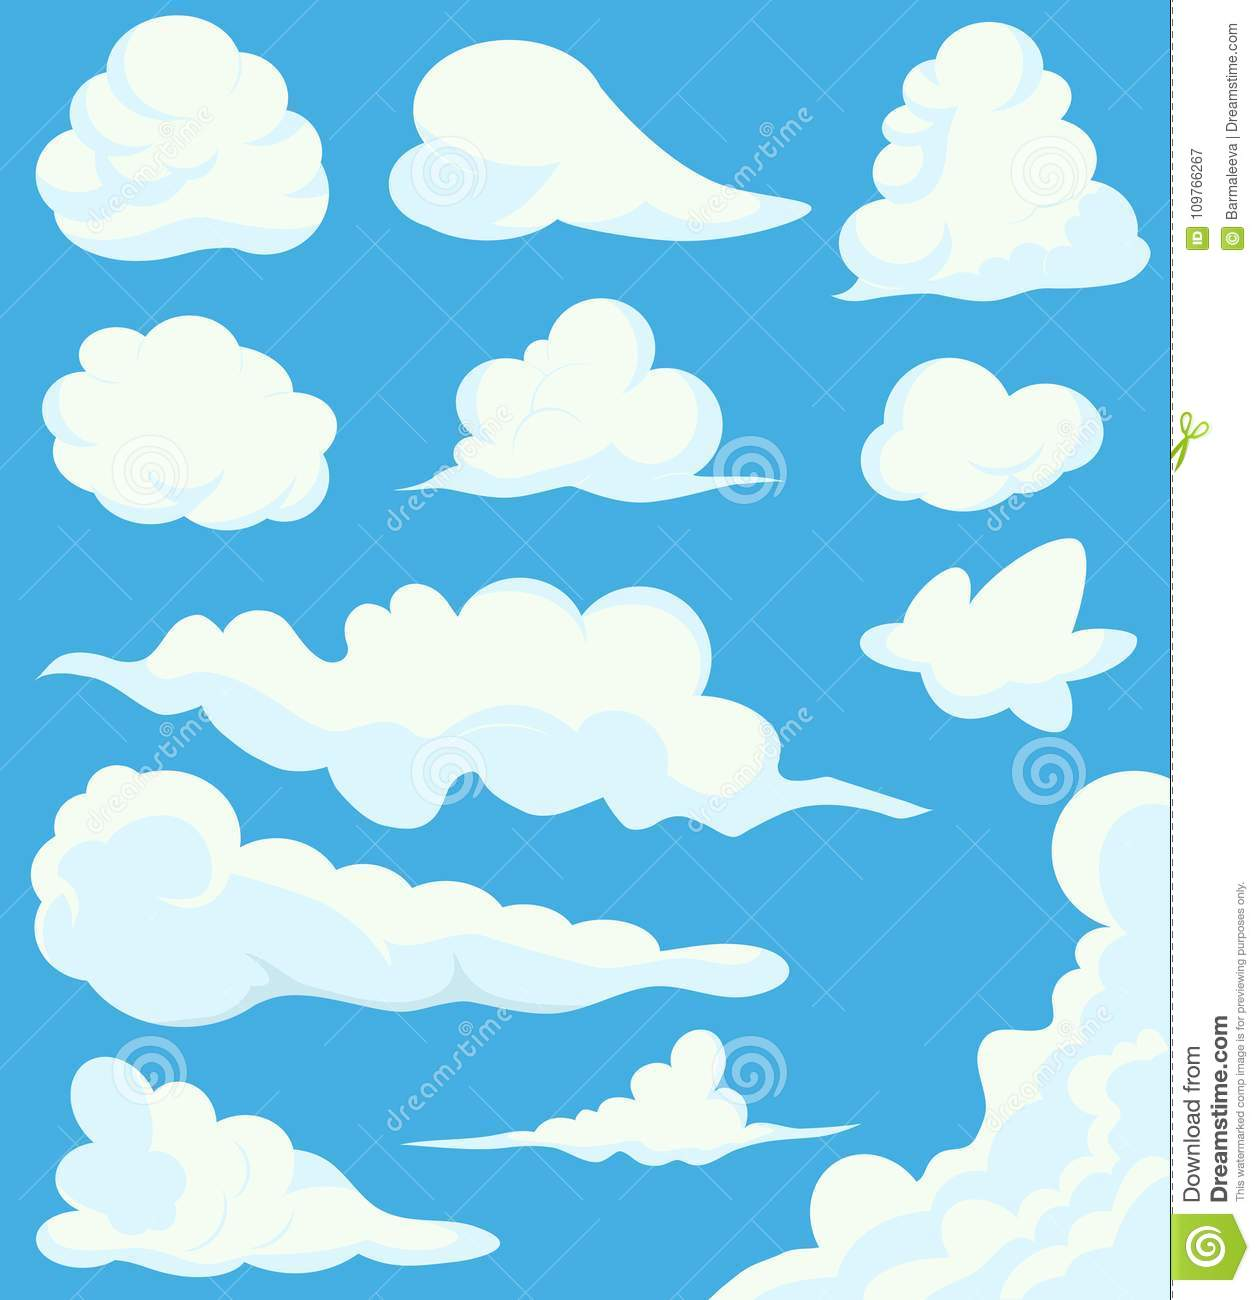 Cartoon Clouds Set On Blue Sky Background. Illustration of a collection of various vector cartoon clouds on a blue sky